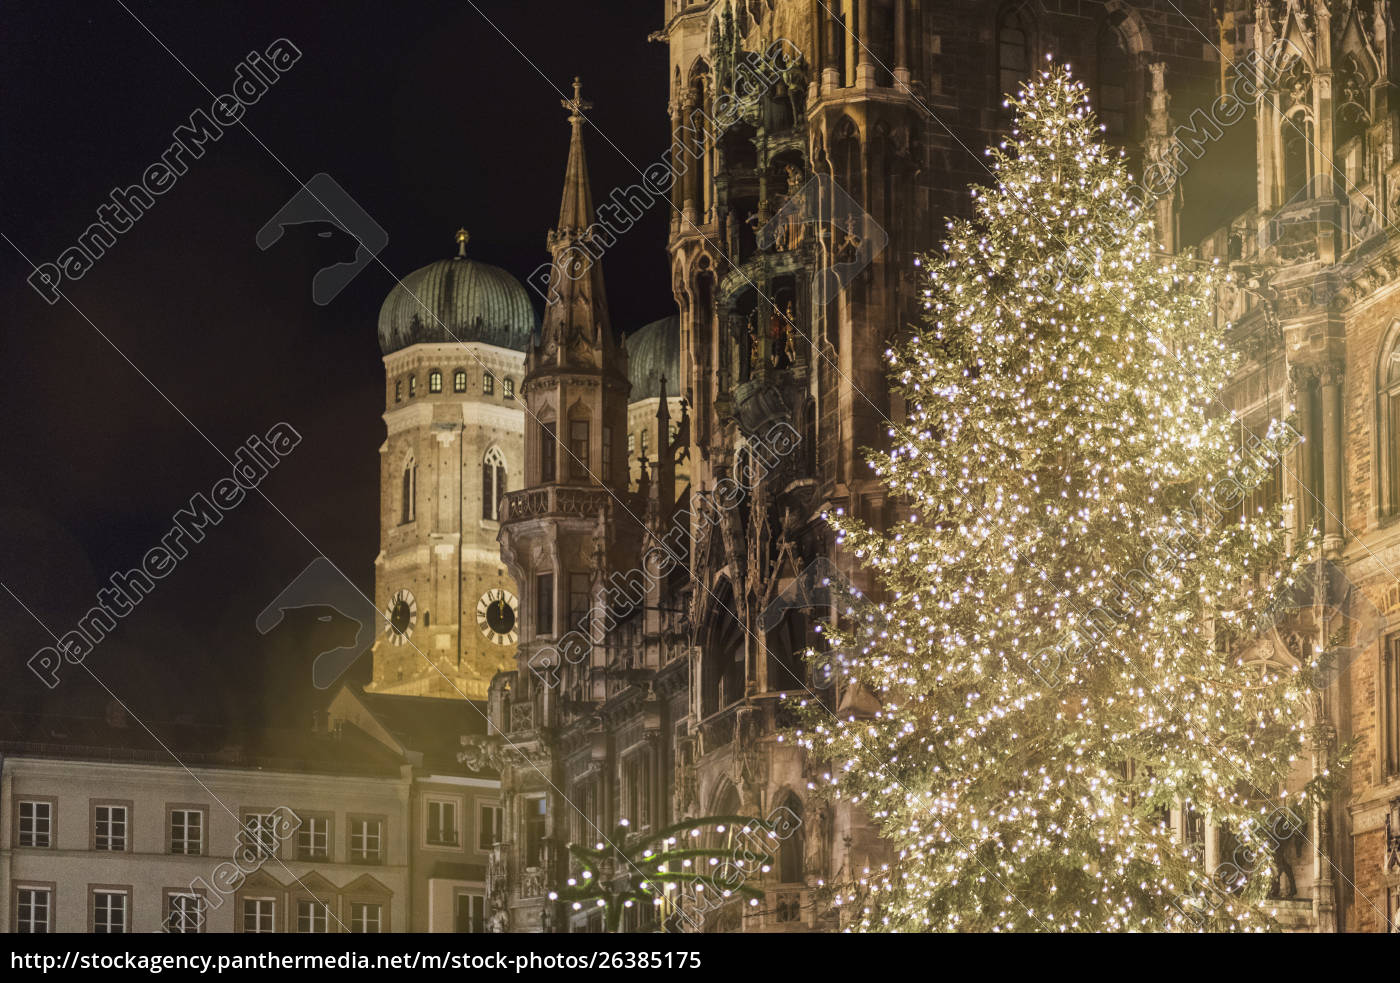 Christmas In Munich Germany.Stock Photo 26385175 Germany Munich Bright Shining Christmas Tree In Front Of Old